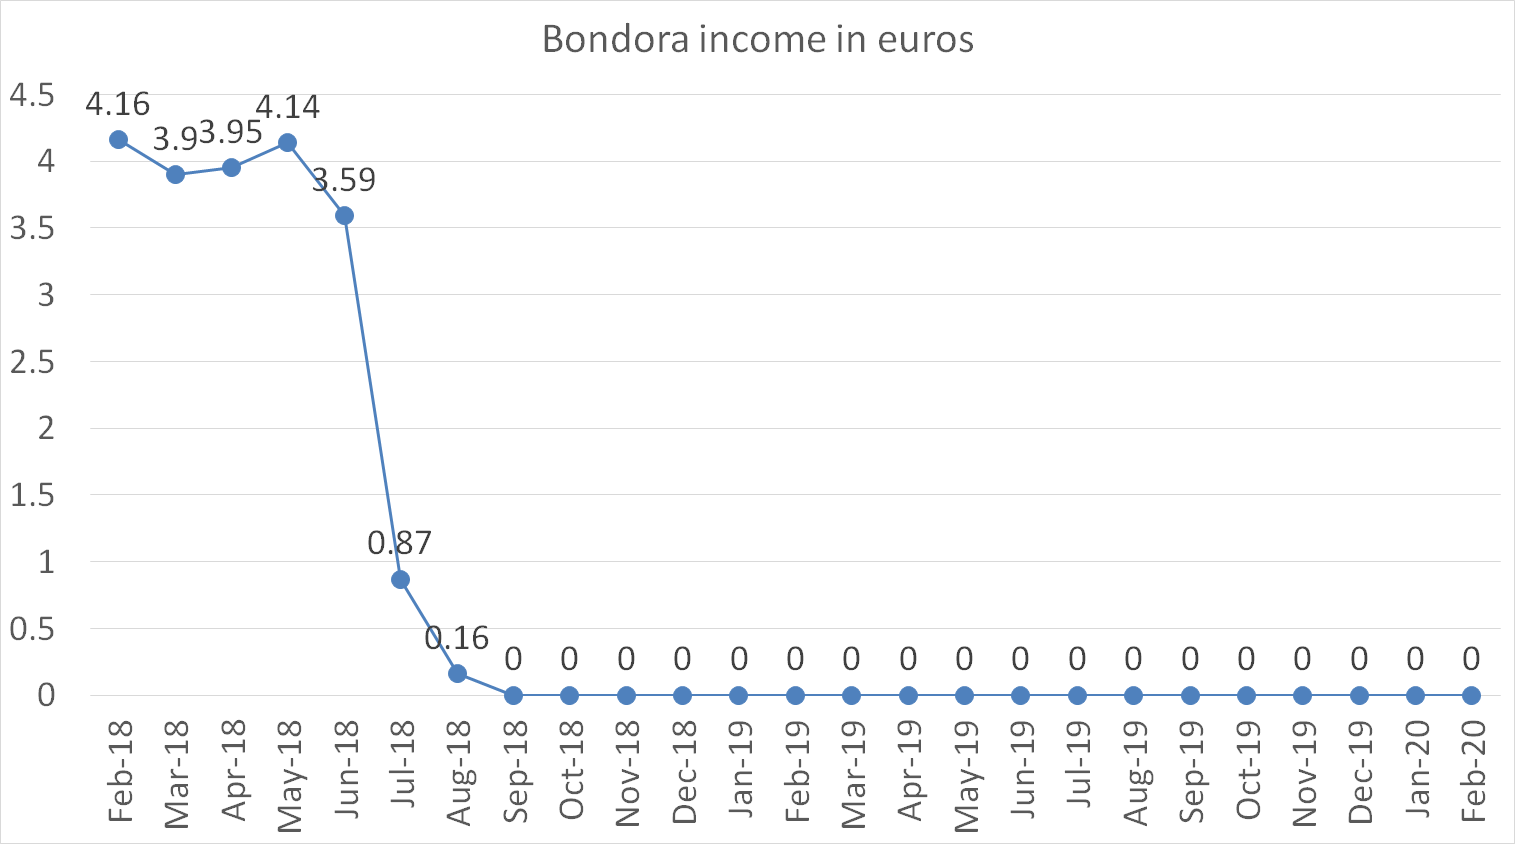 bondora income in euros february 2020